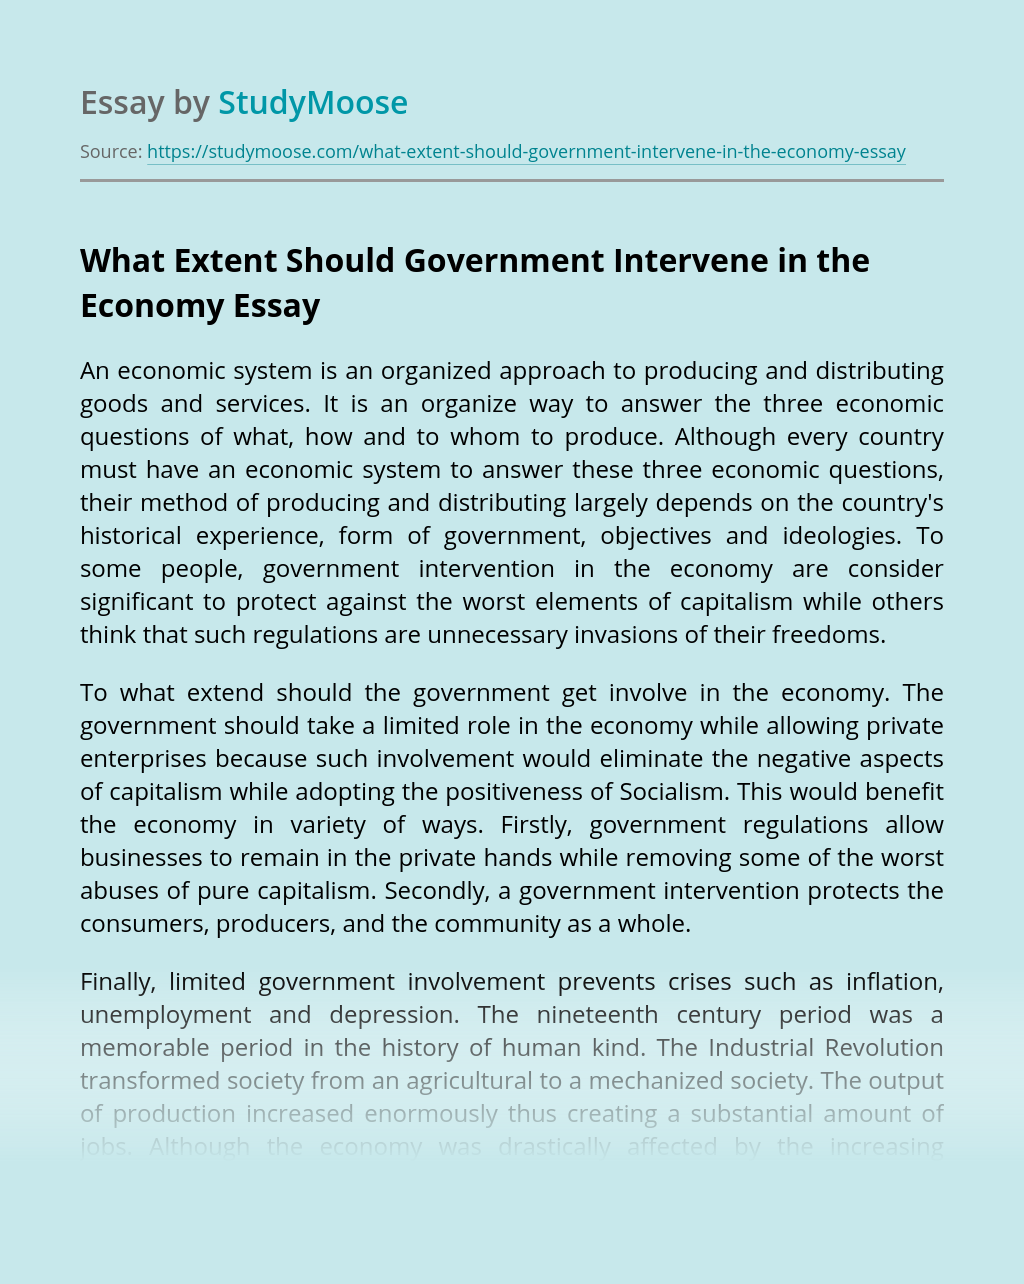 What Extent Should Government Intervene in the Economy